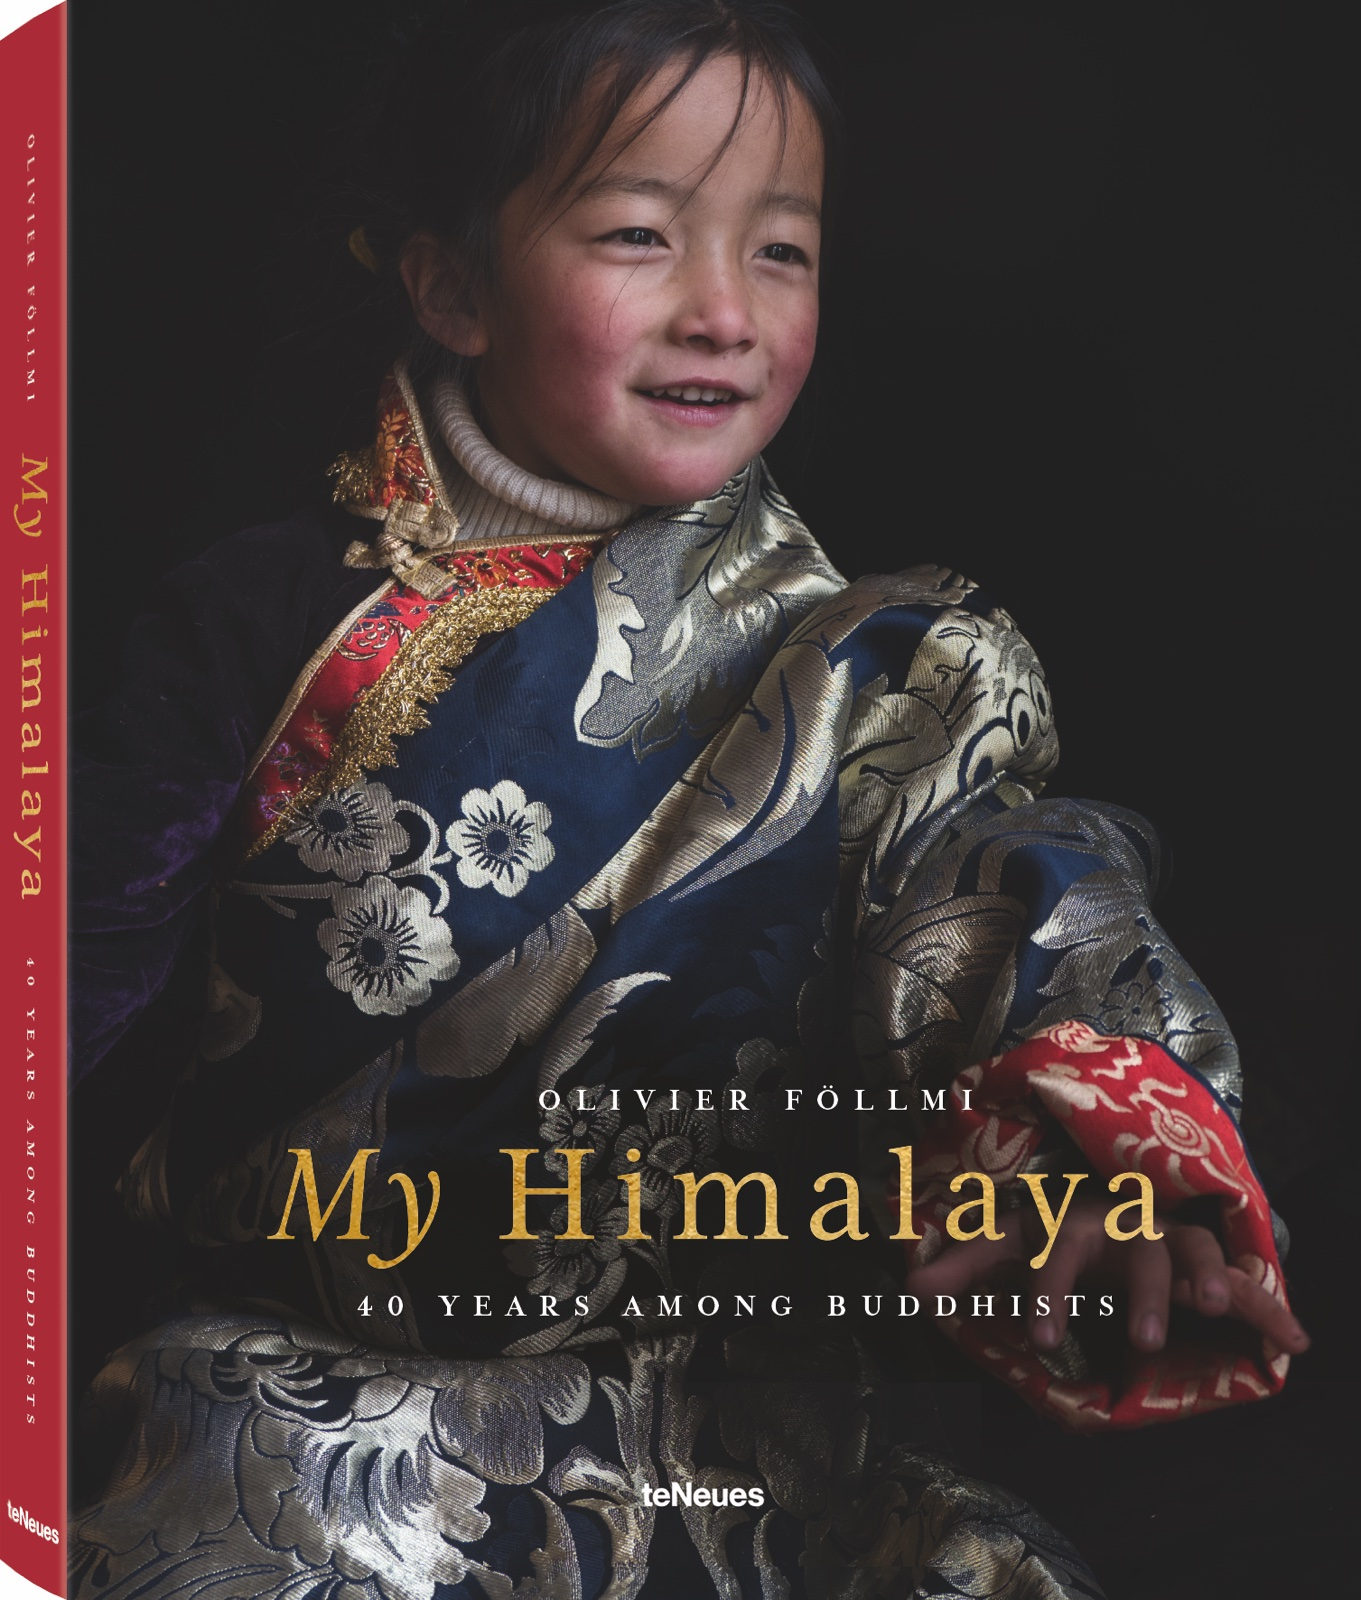 My Himalaya - 40 Years Among Buddhists van fotograaf Olivier Föllmi